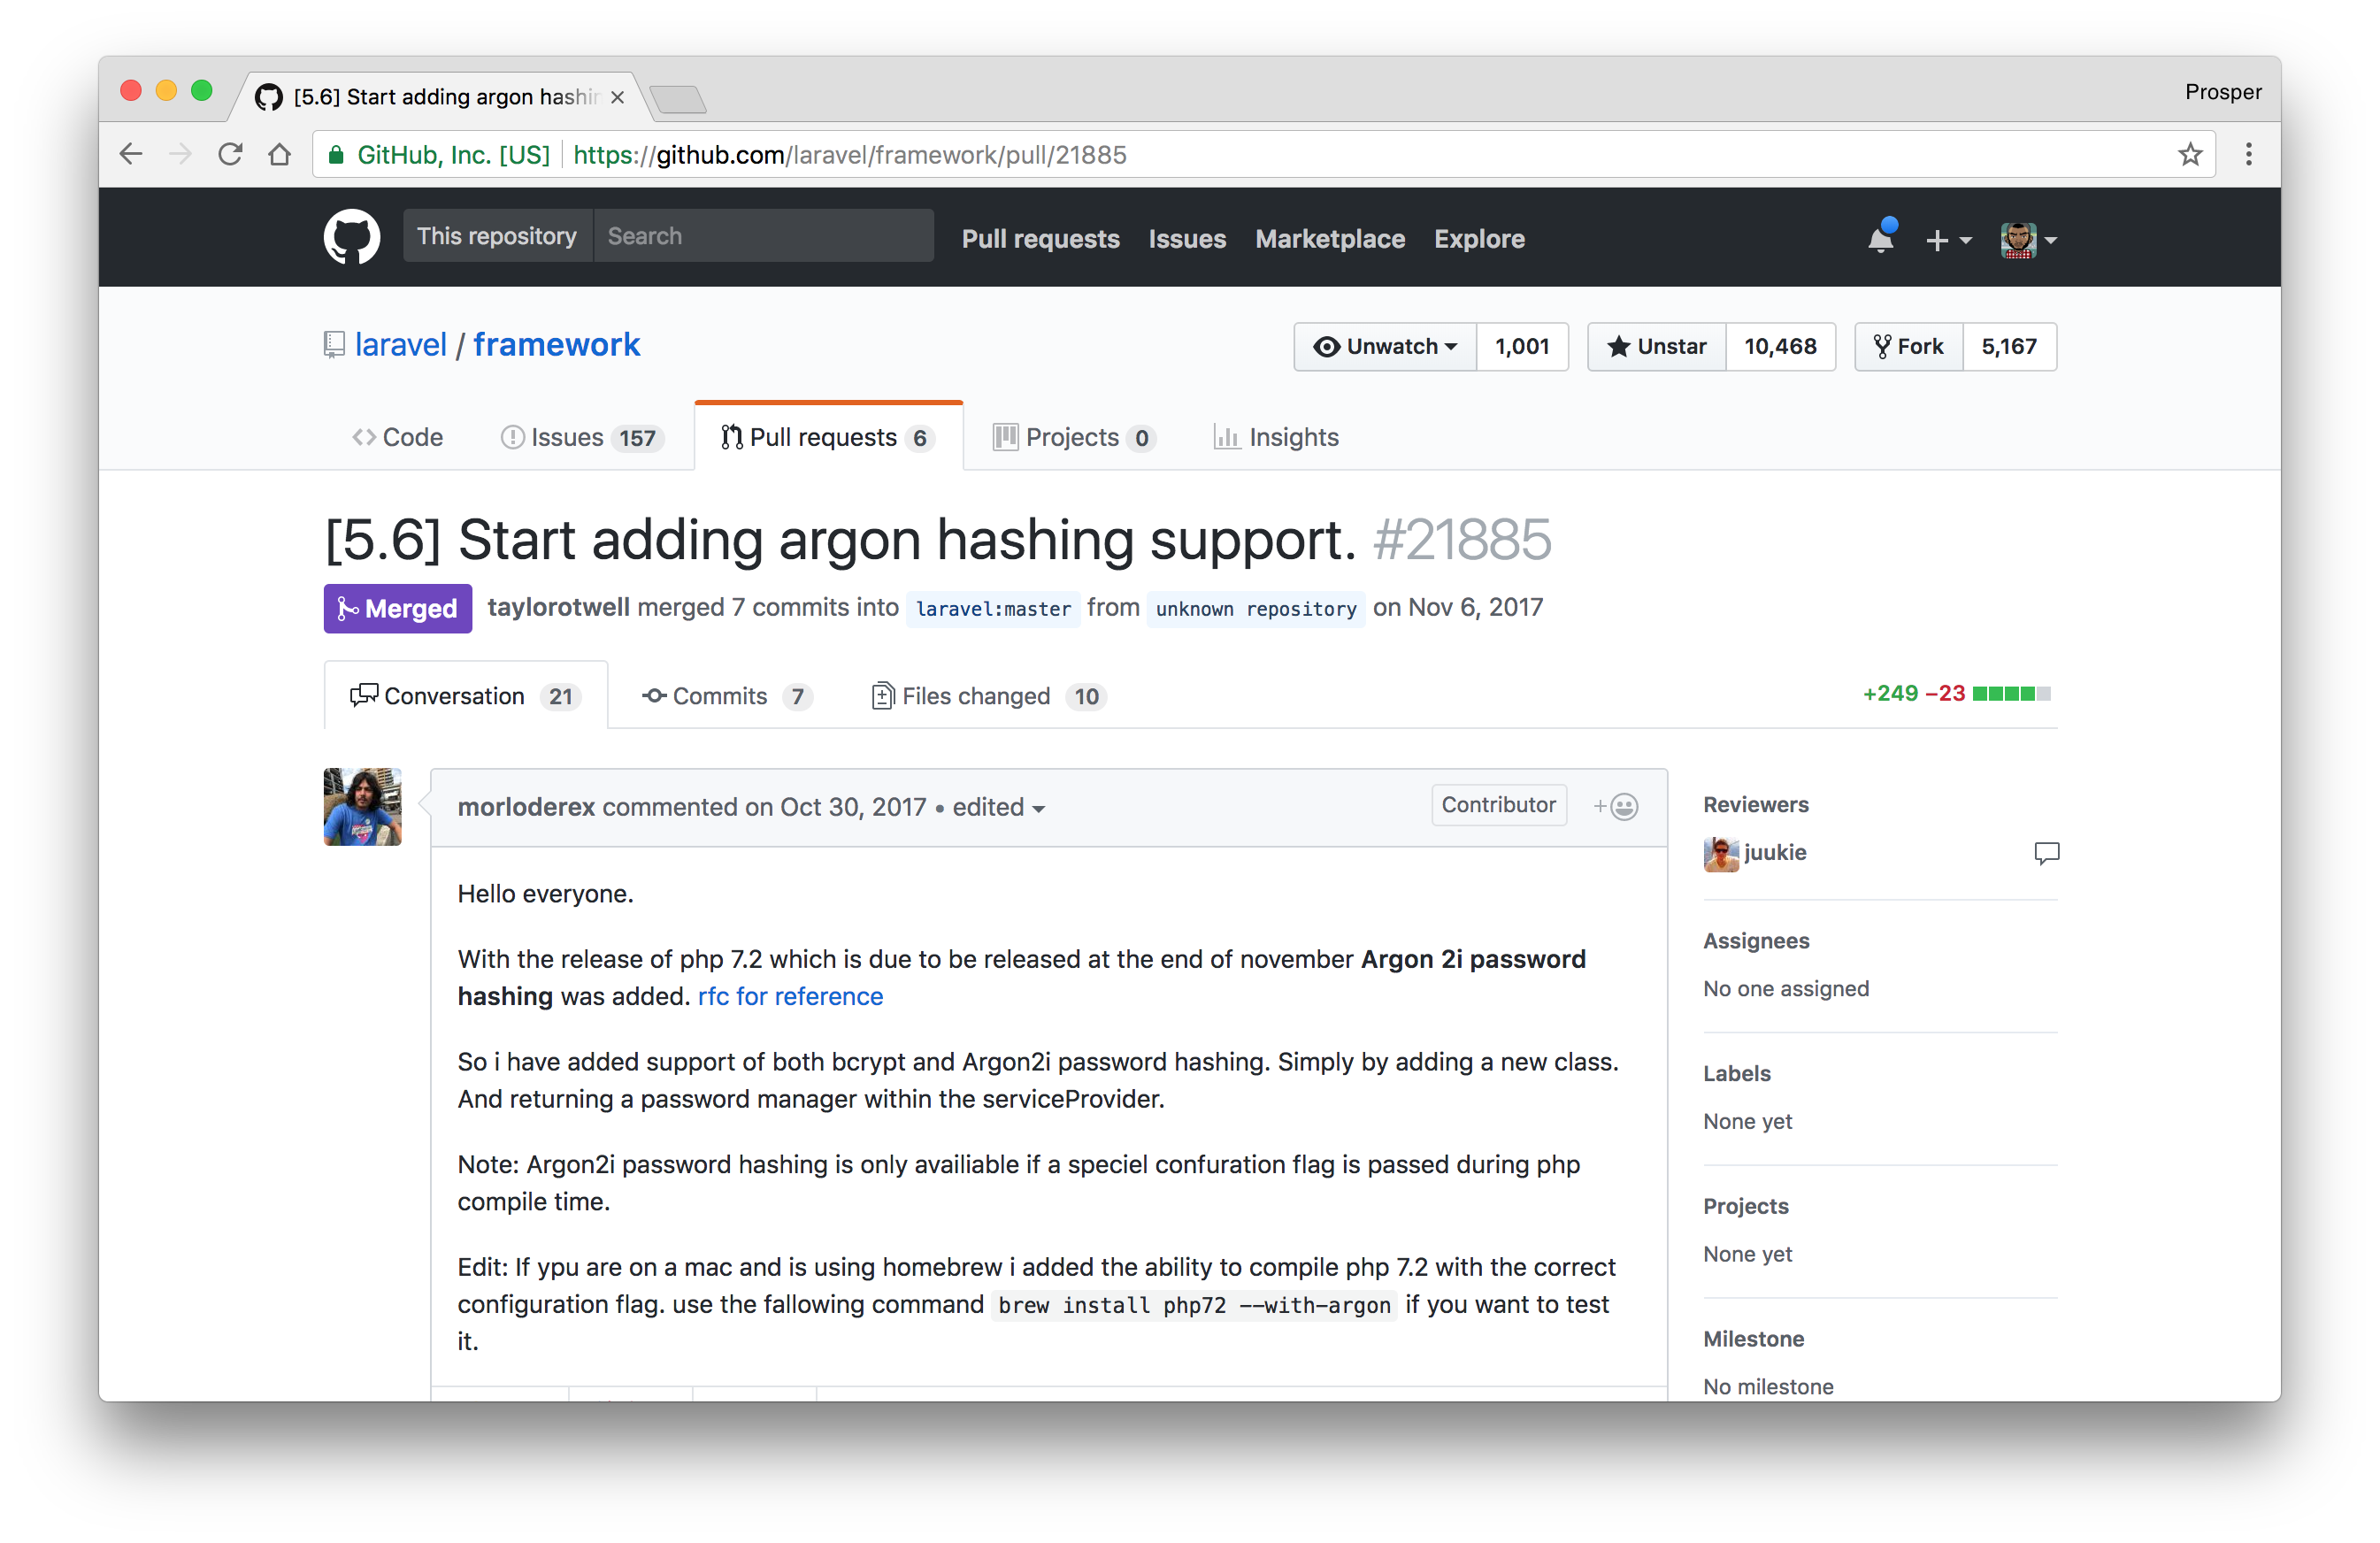 Argon Password Hashing Support